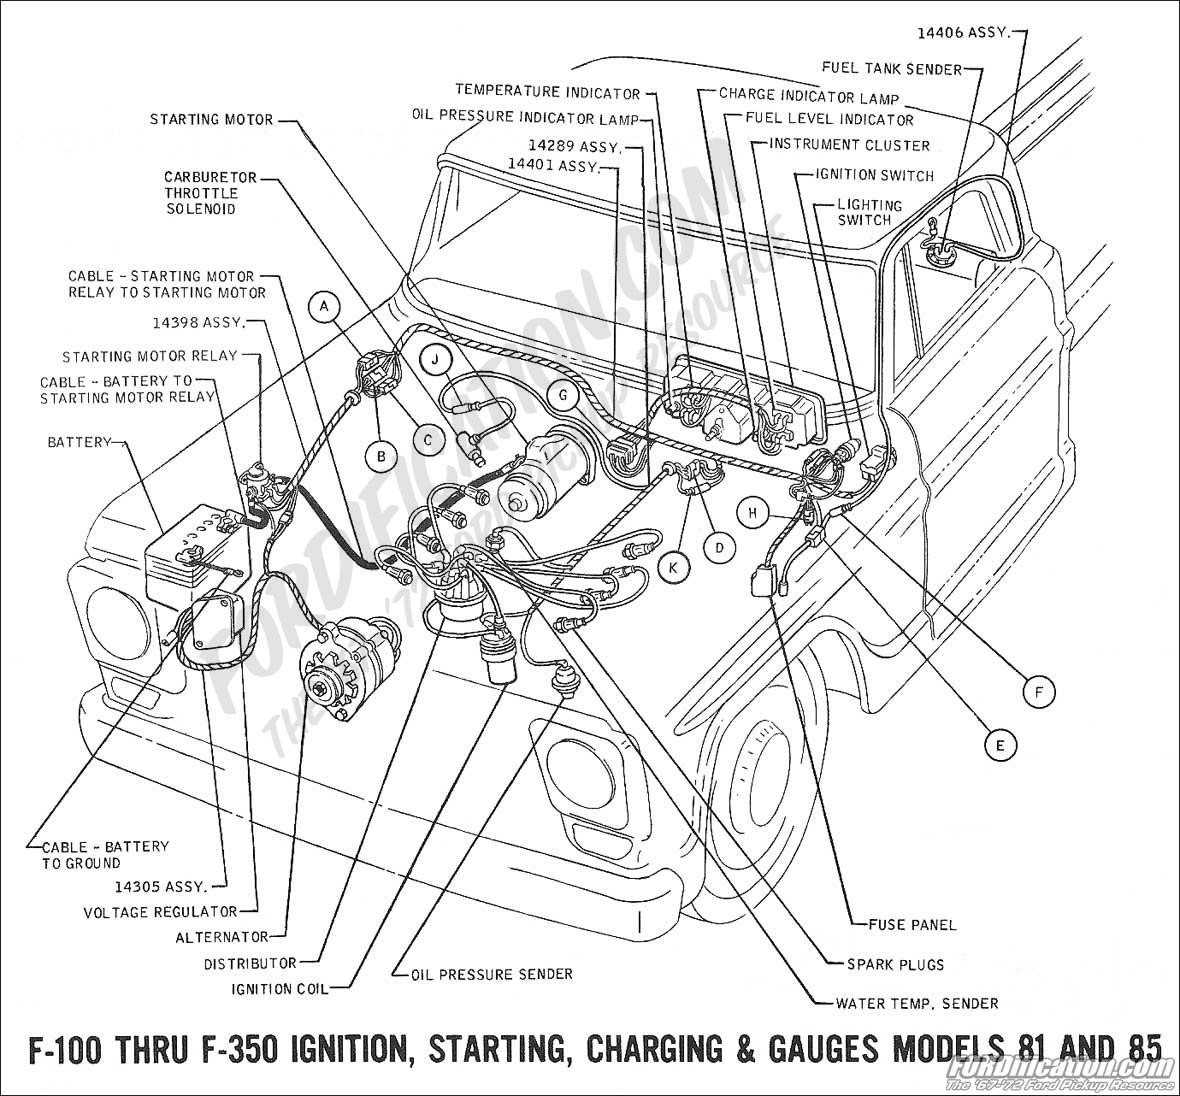 1975 ford voltage regulator wiring diagram